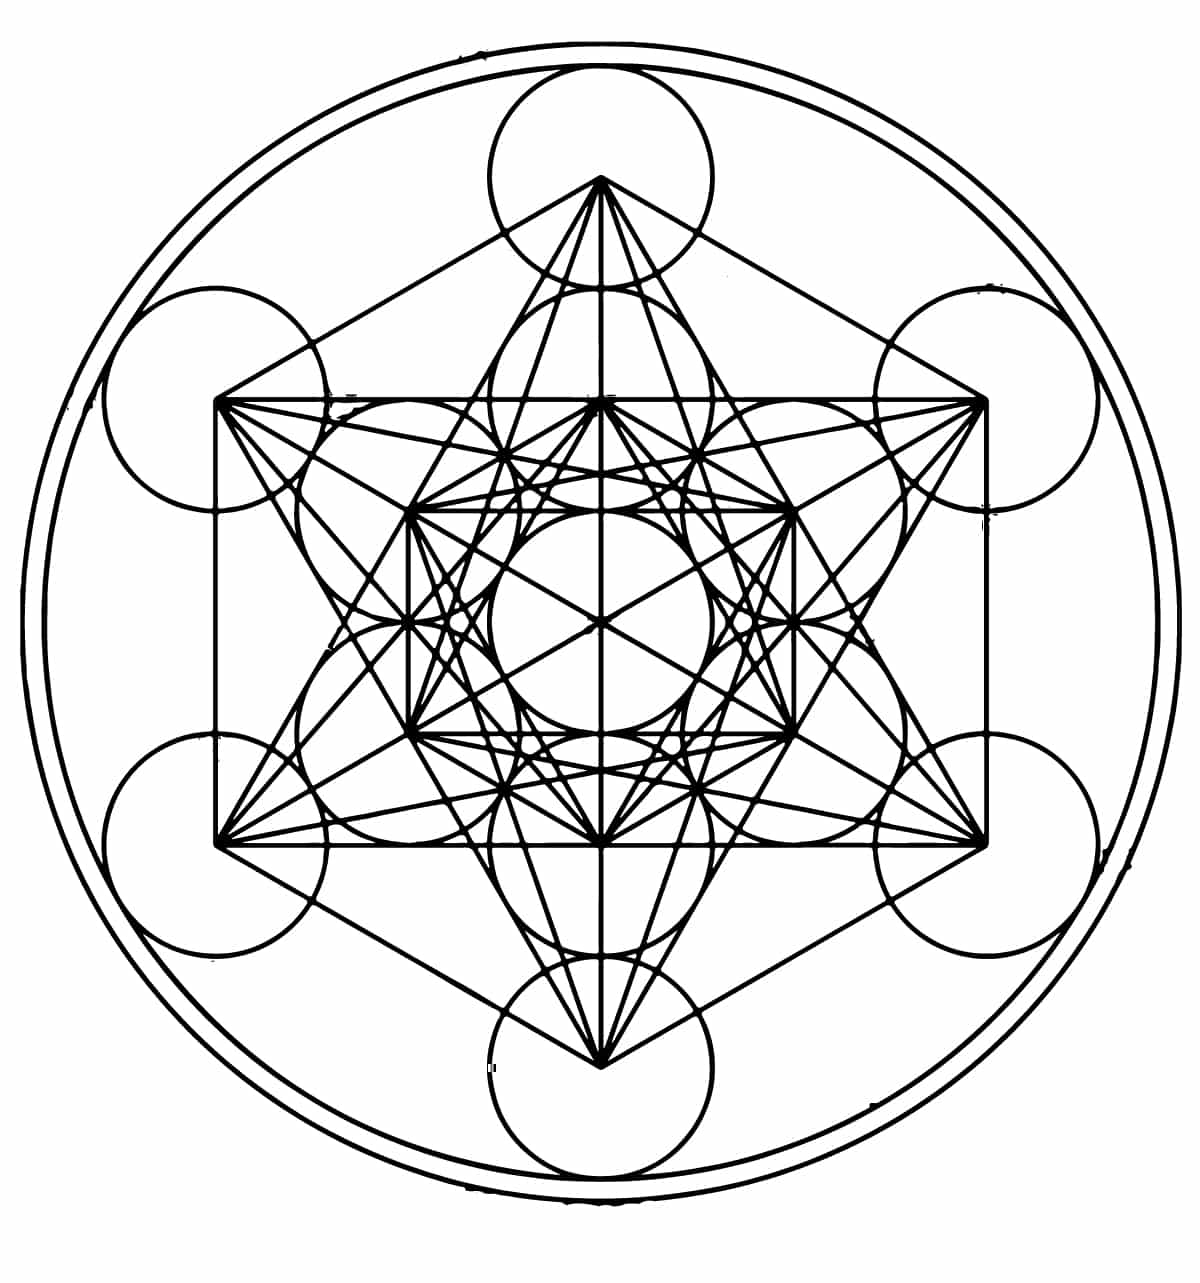 Metatron S Cube Symbol Its Origins And Meaning